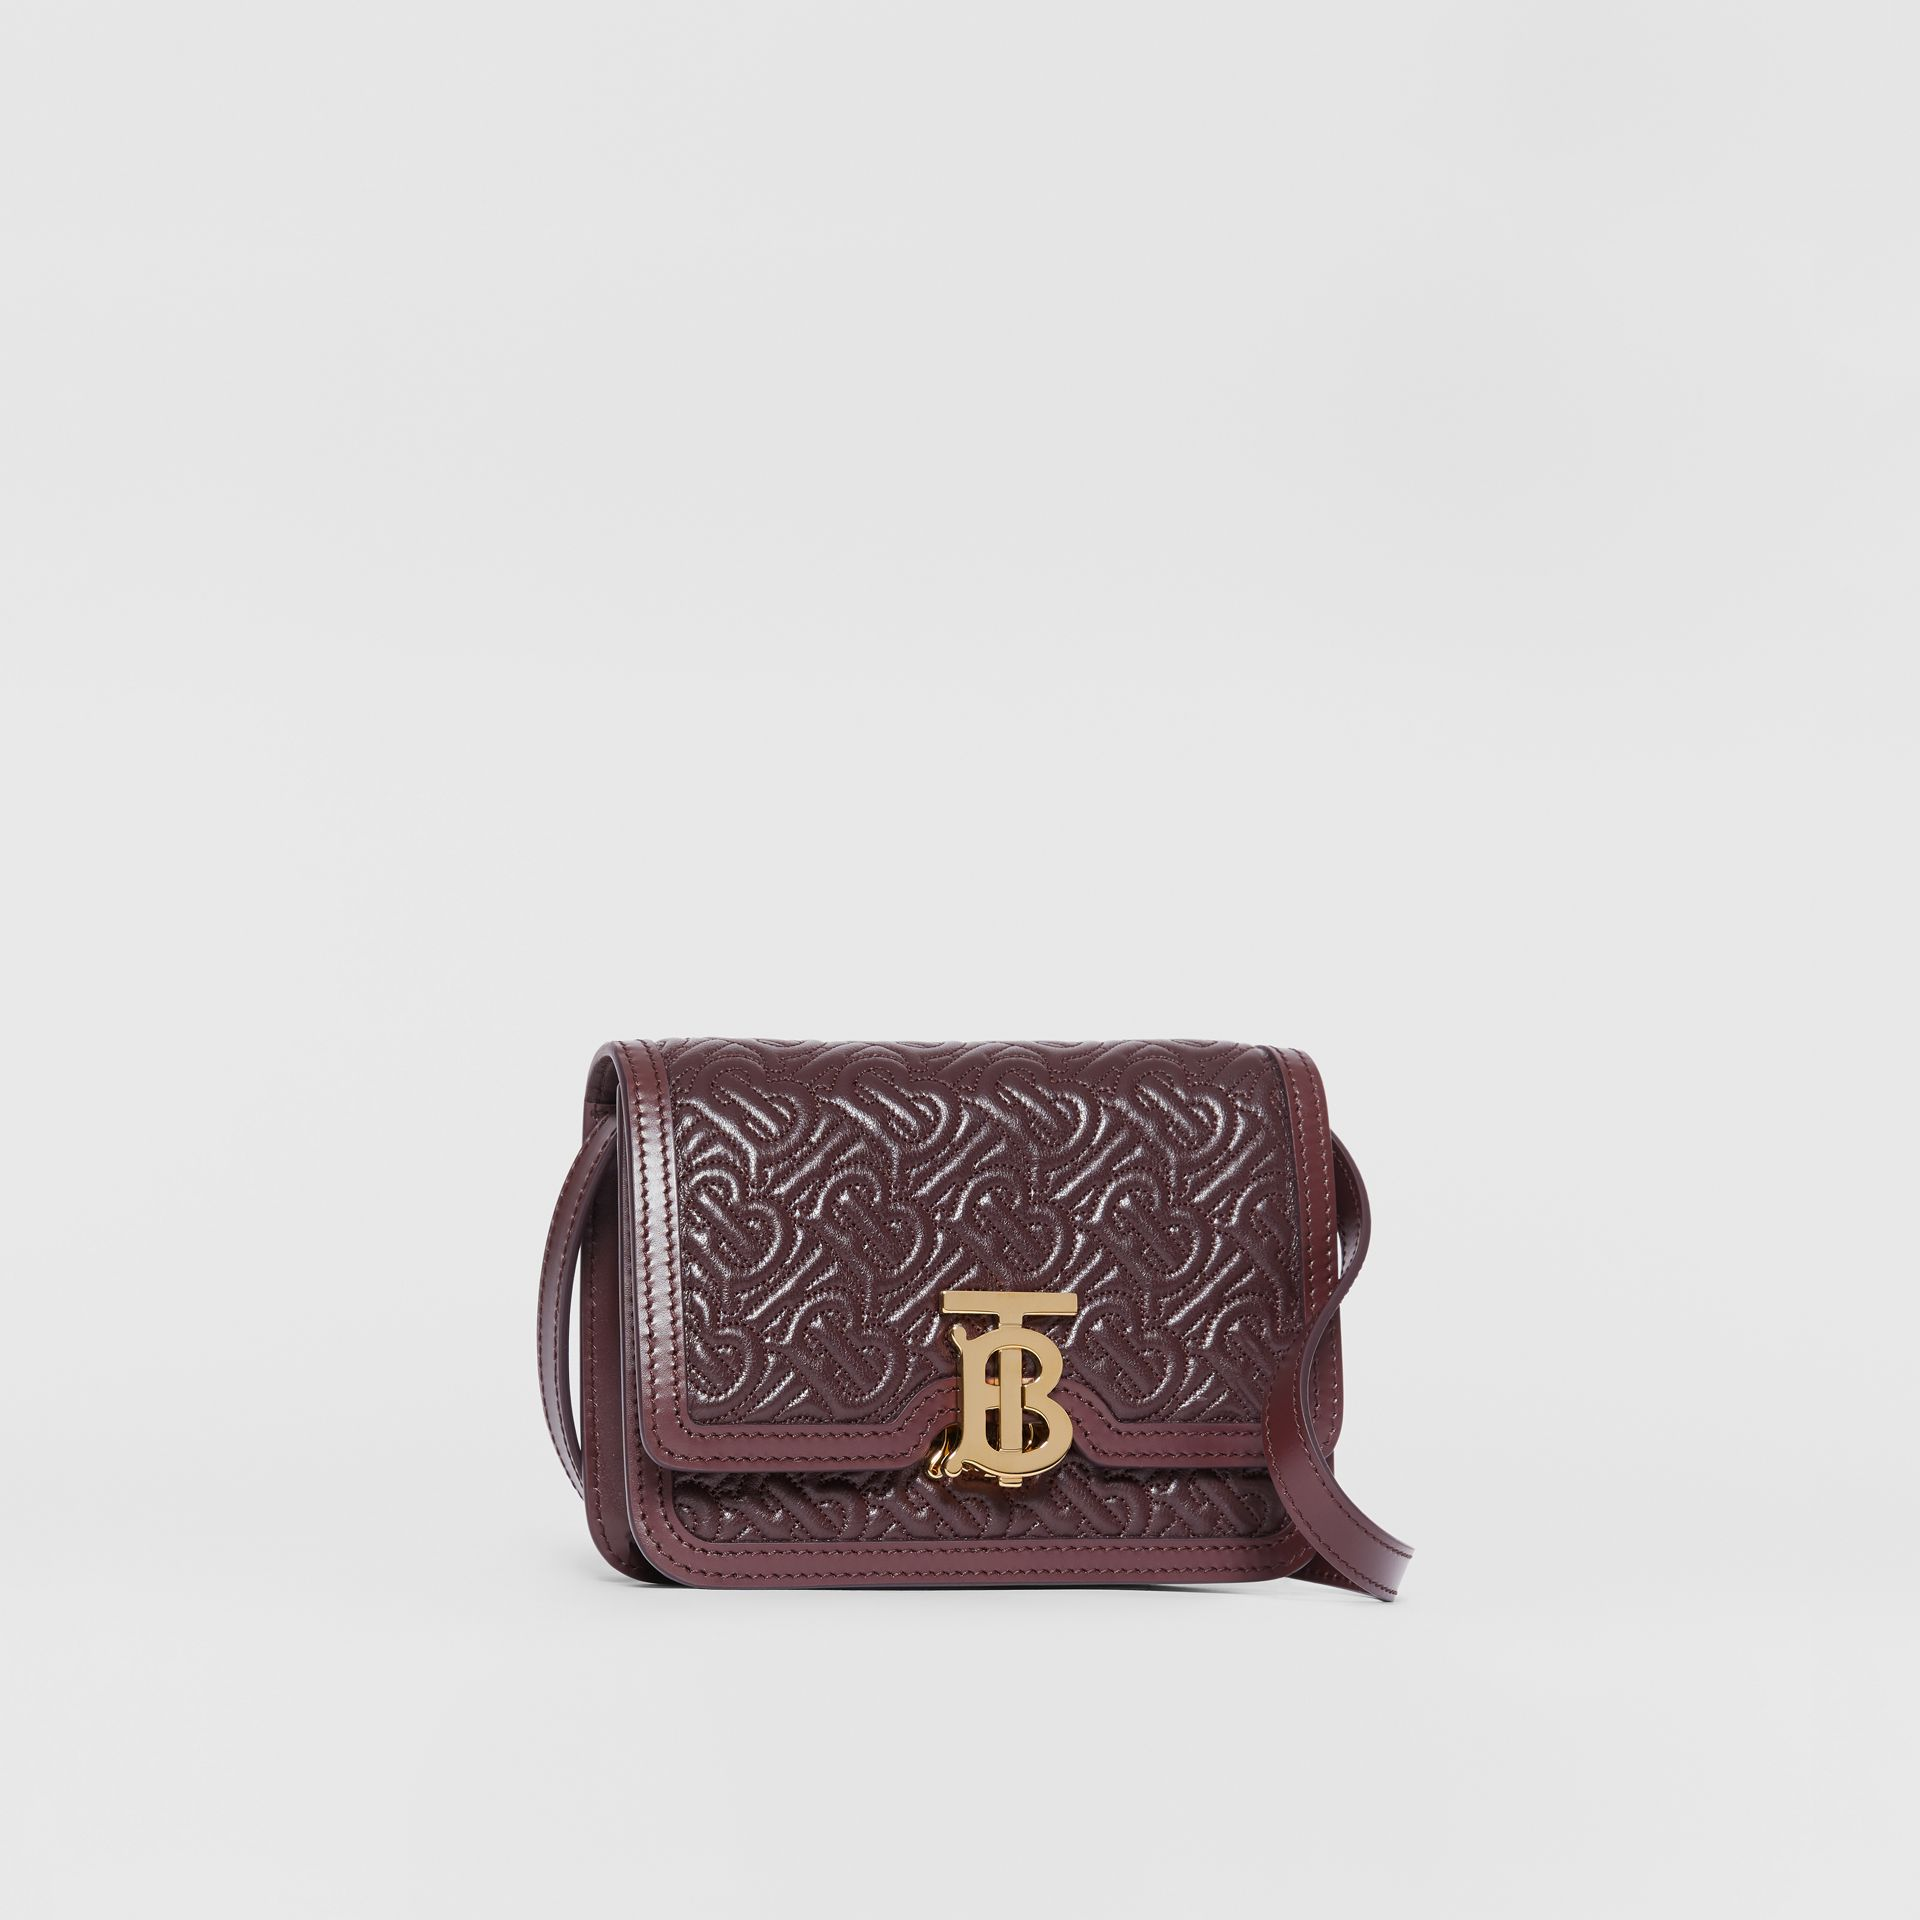 Mini Quilted Monogram Lambskin TB Bag in Dark Burgundy - Women | Burberry Hong Kong S.A.R - gallery image 6